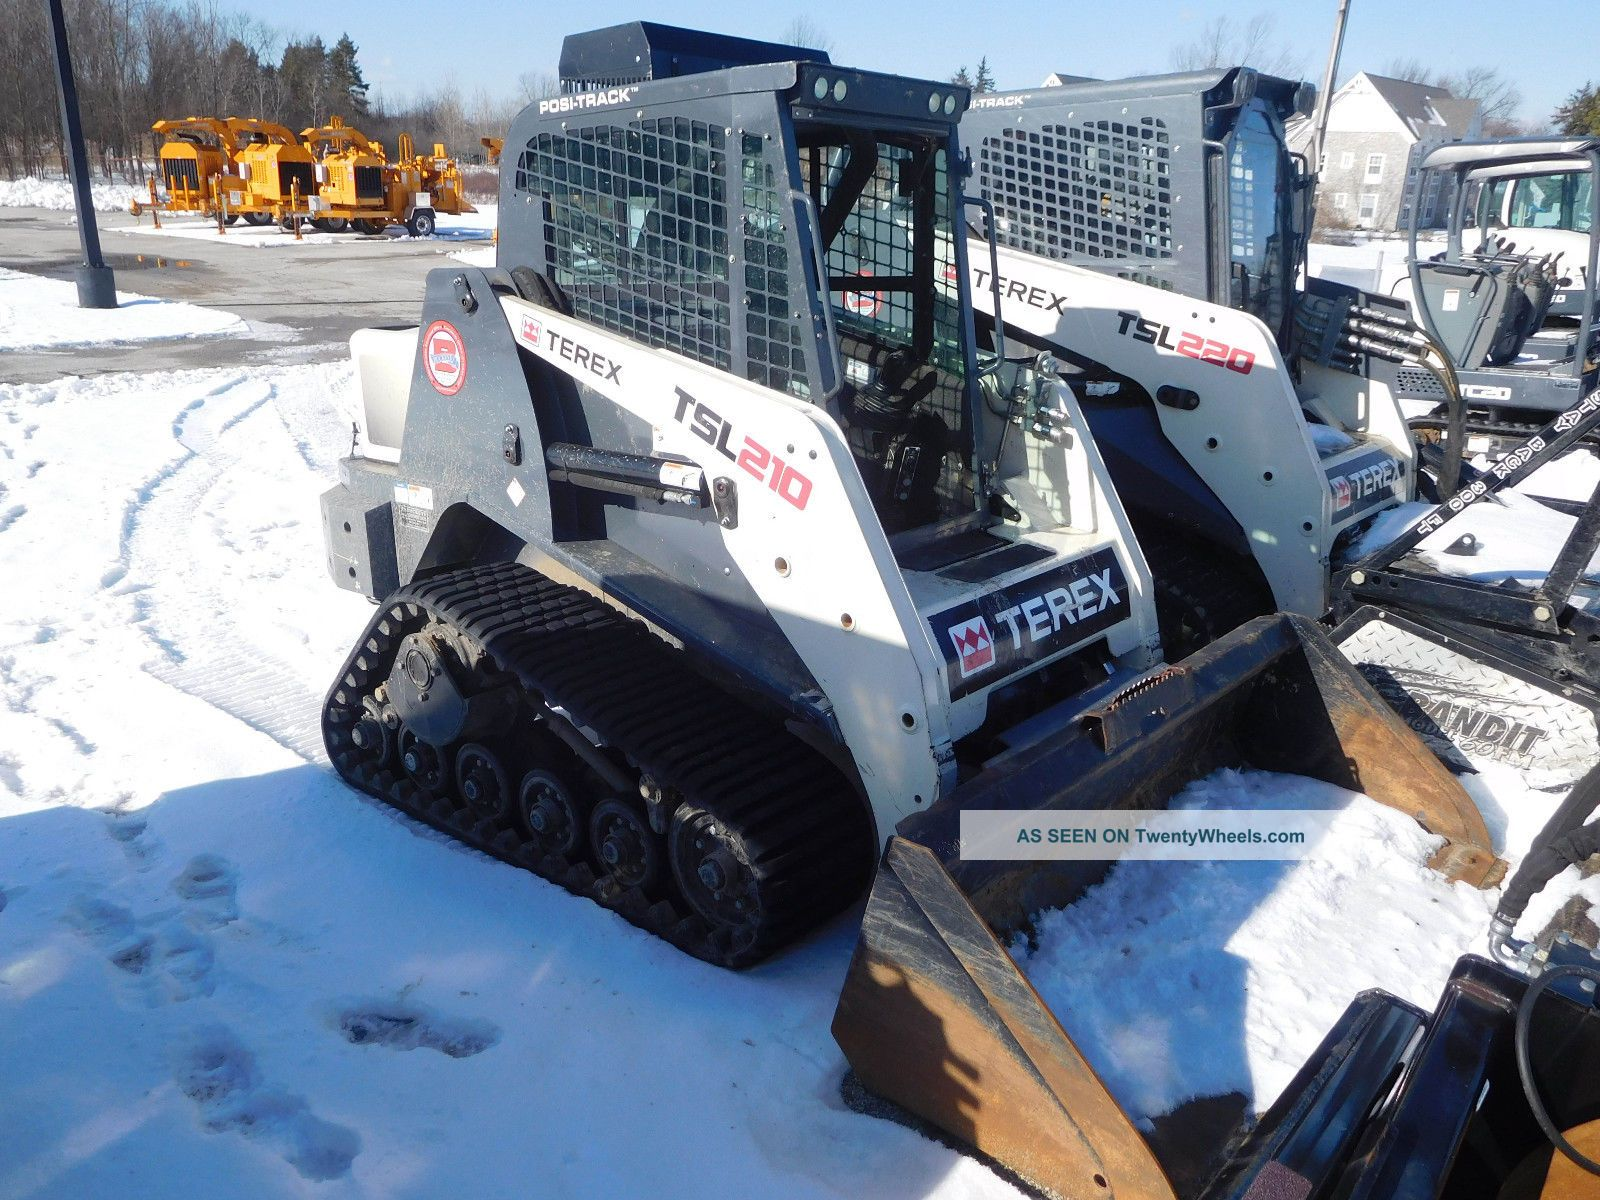 Terex Tsl210 Compact Mini Loader Crawler Dozers & Loaders photo